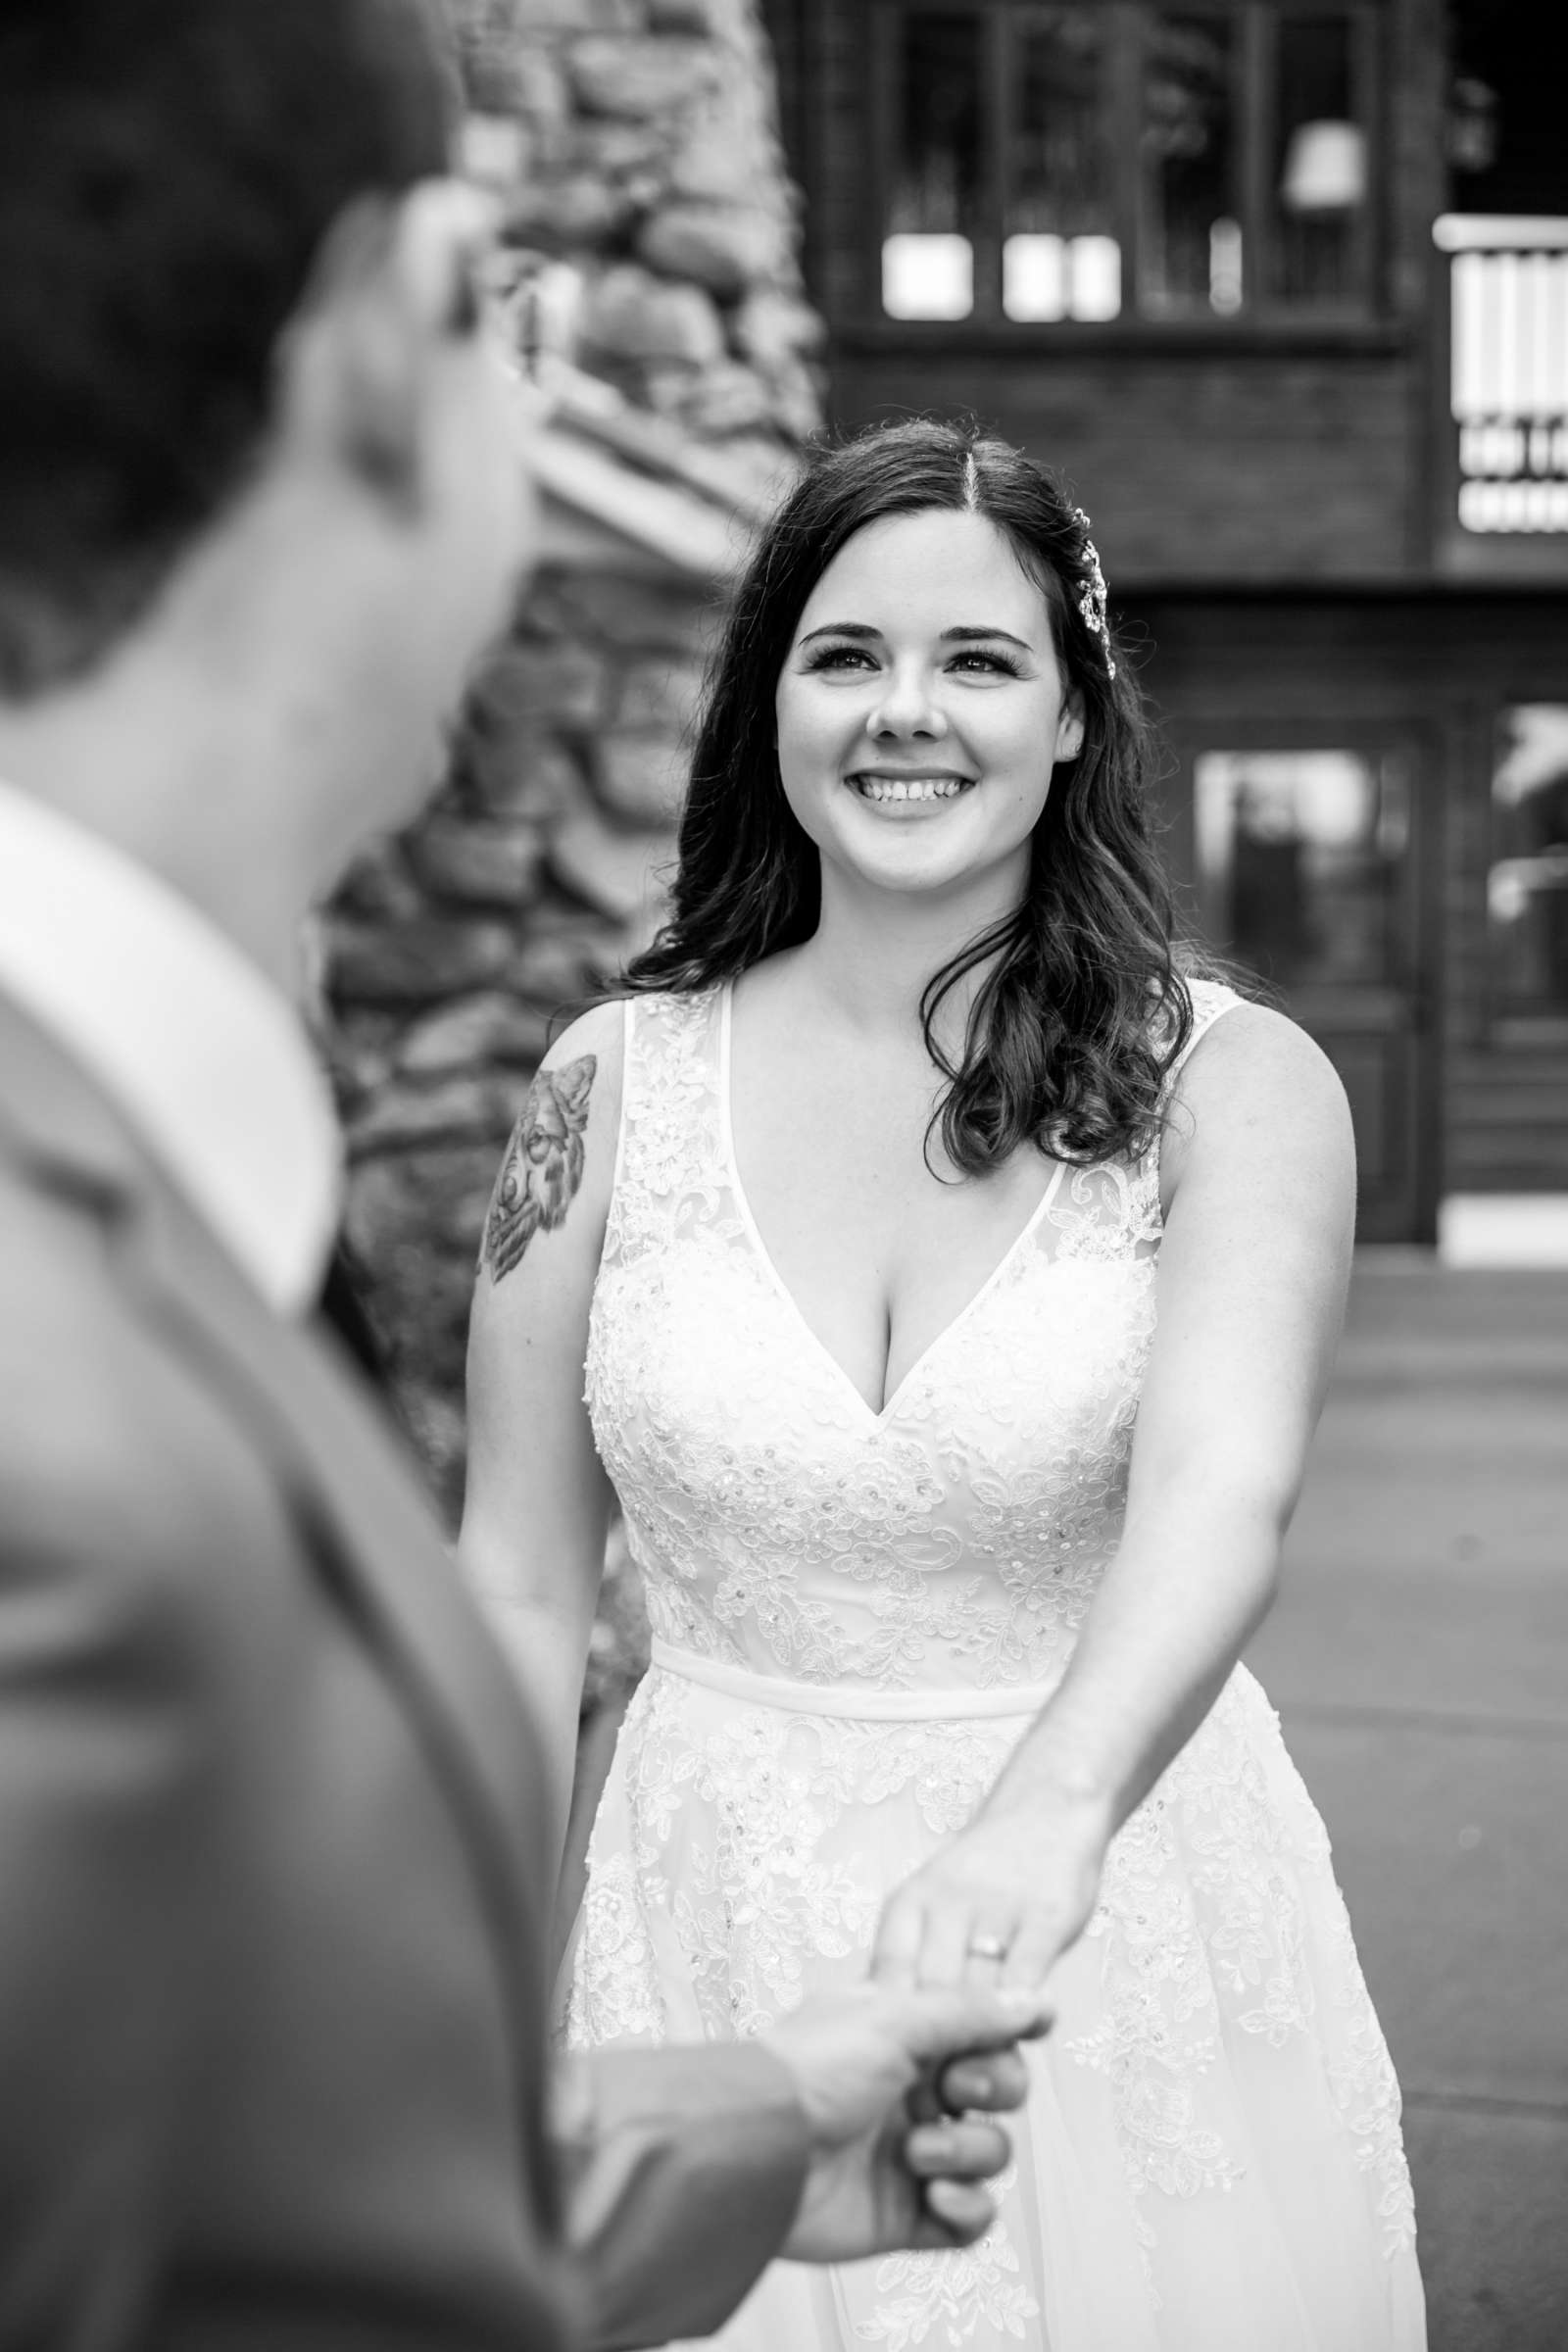 Mt Woodson Castle Wedding, Valerie and Ian Wedding Photo #27 by True Photography